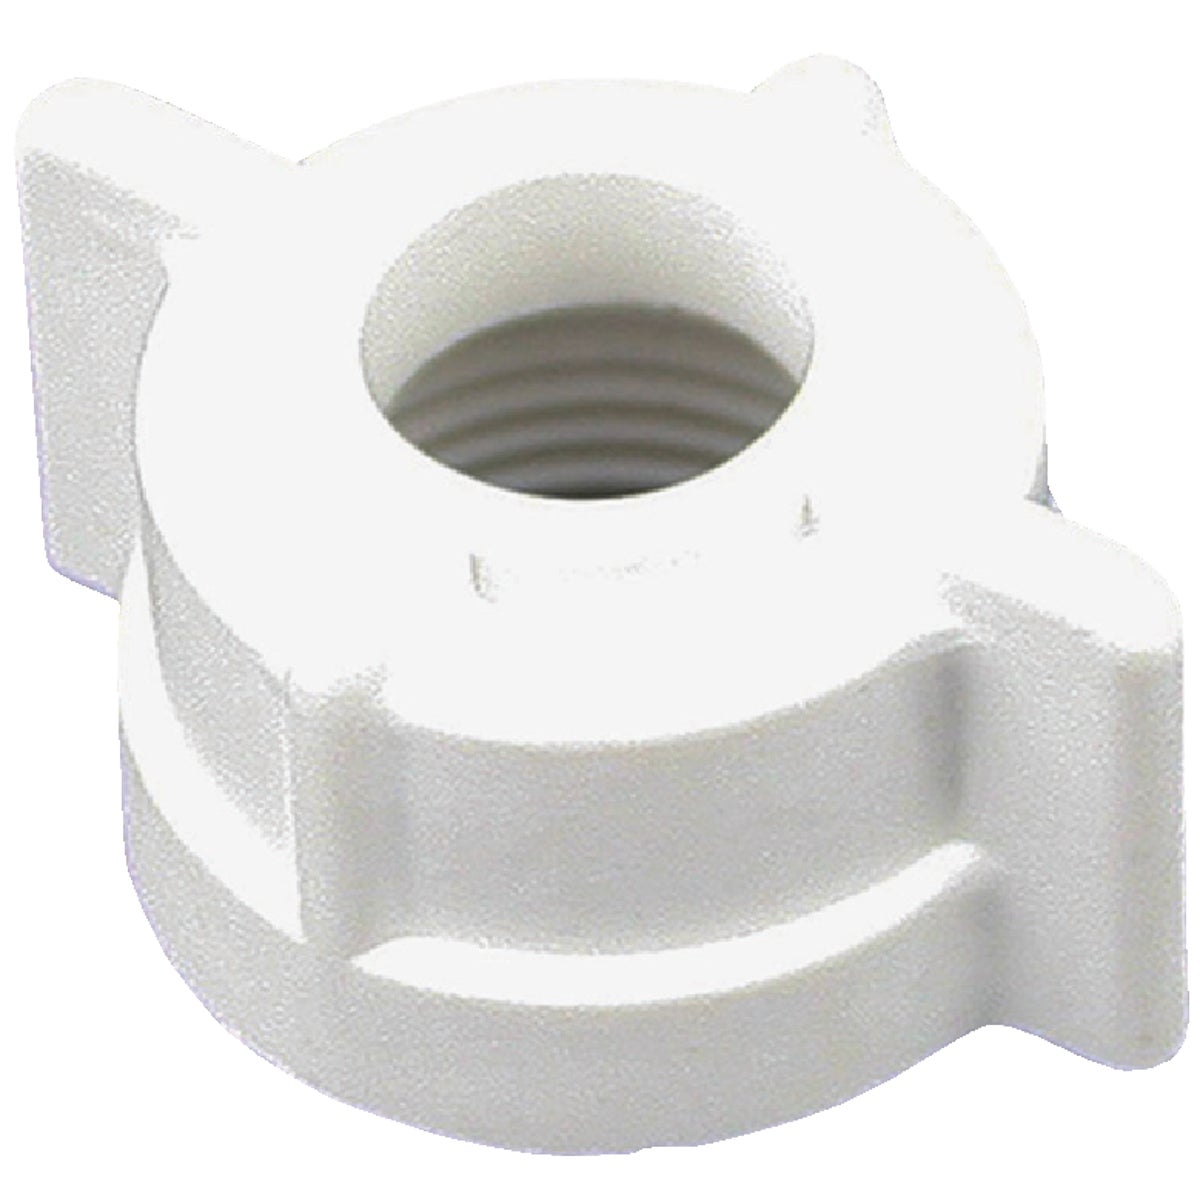 COUPLING NUT - B10-105 by Jones Stephens Corp